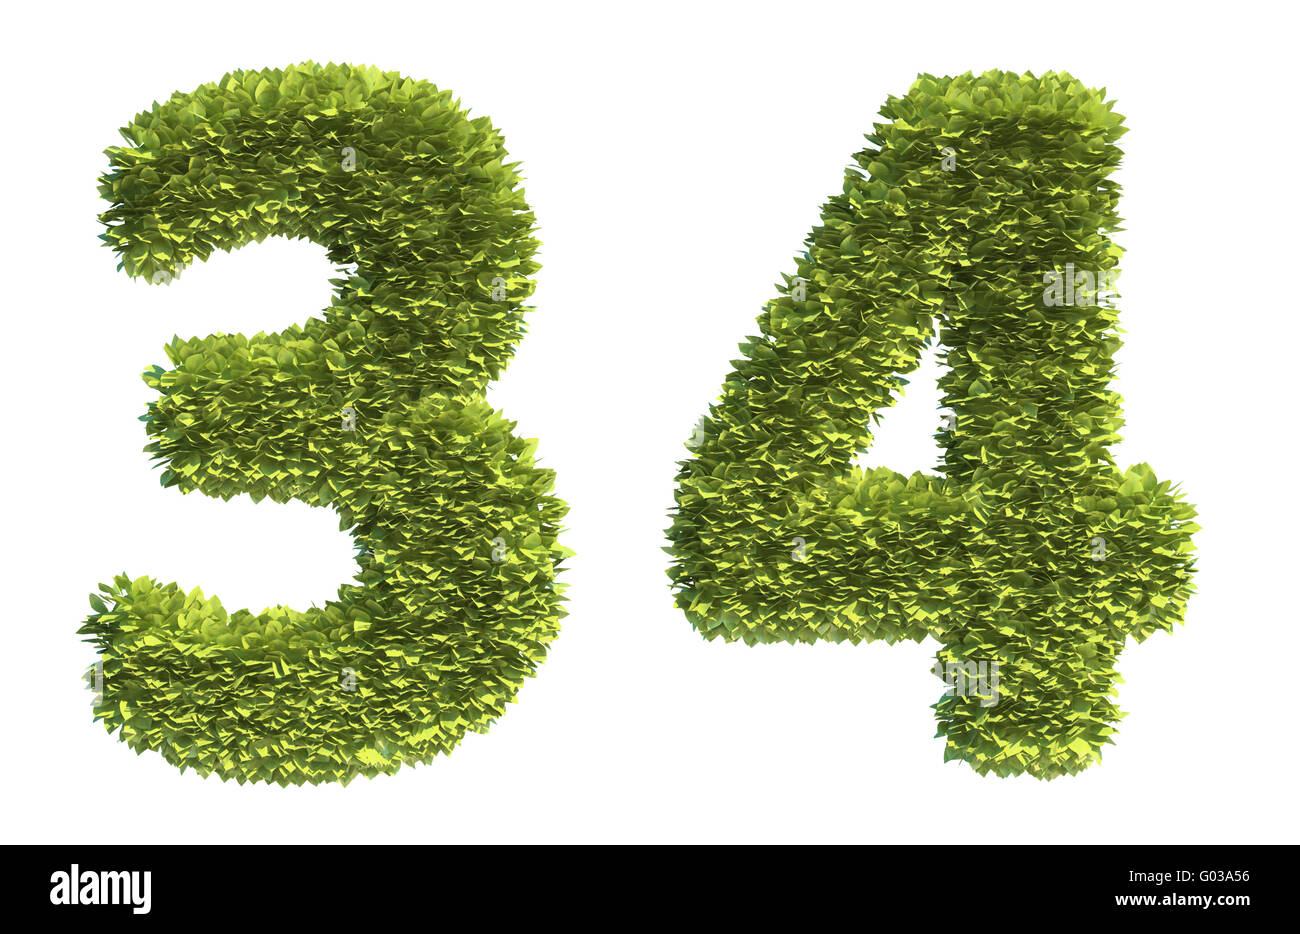 Leaf covered letters - part of a full alphabet - Stock Image